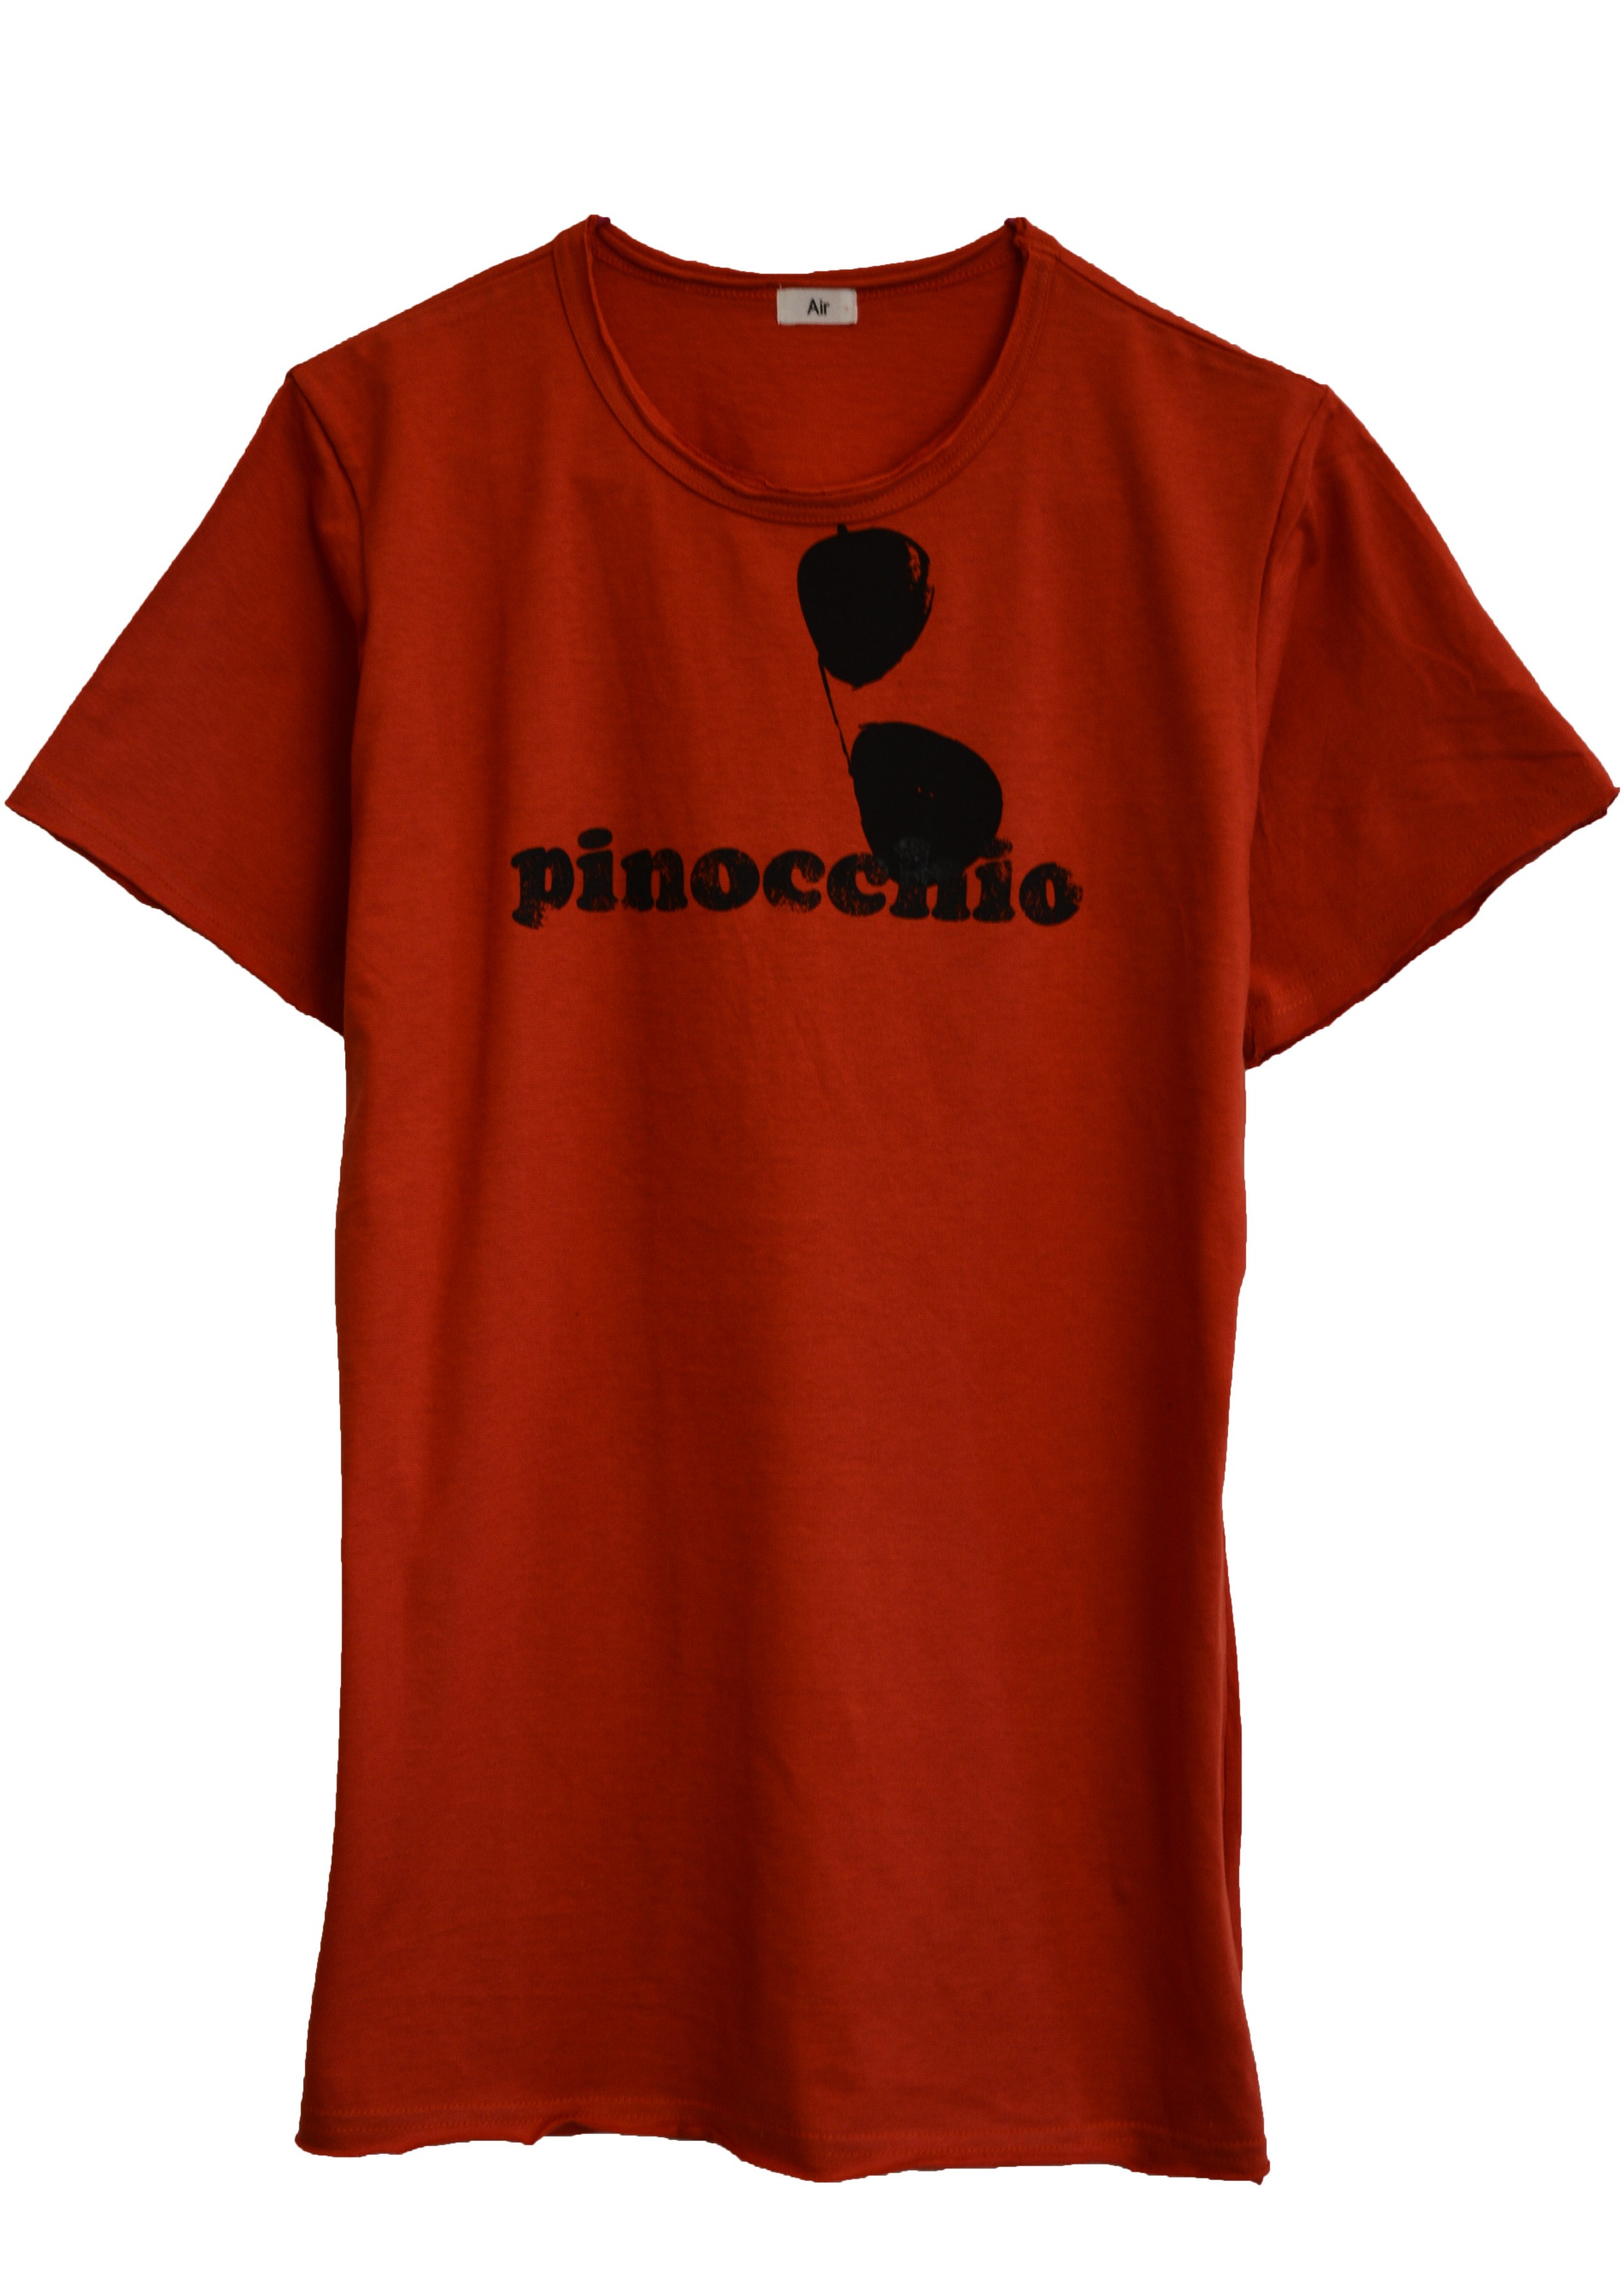 【AIR】PINOCCHIO T-SHIRT (RED-ORANGE)